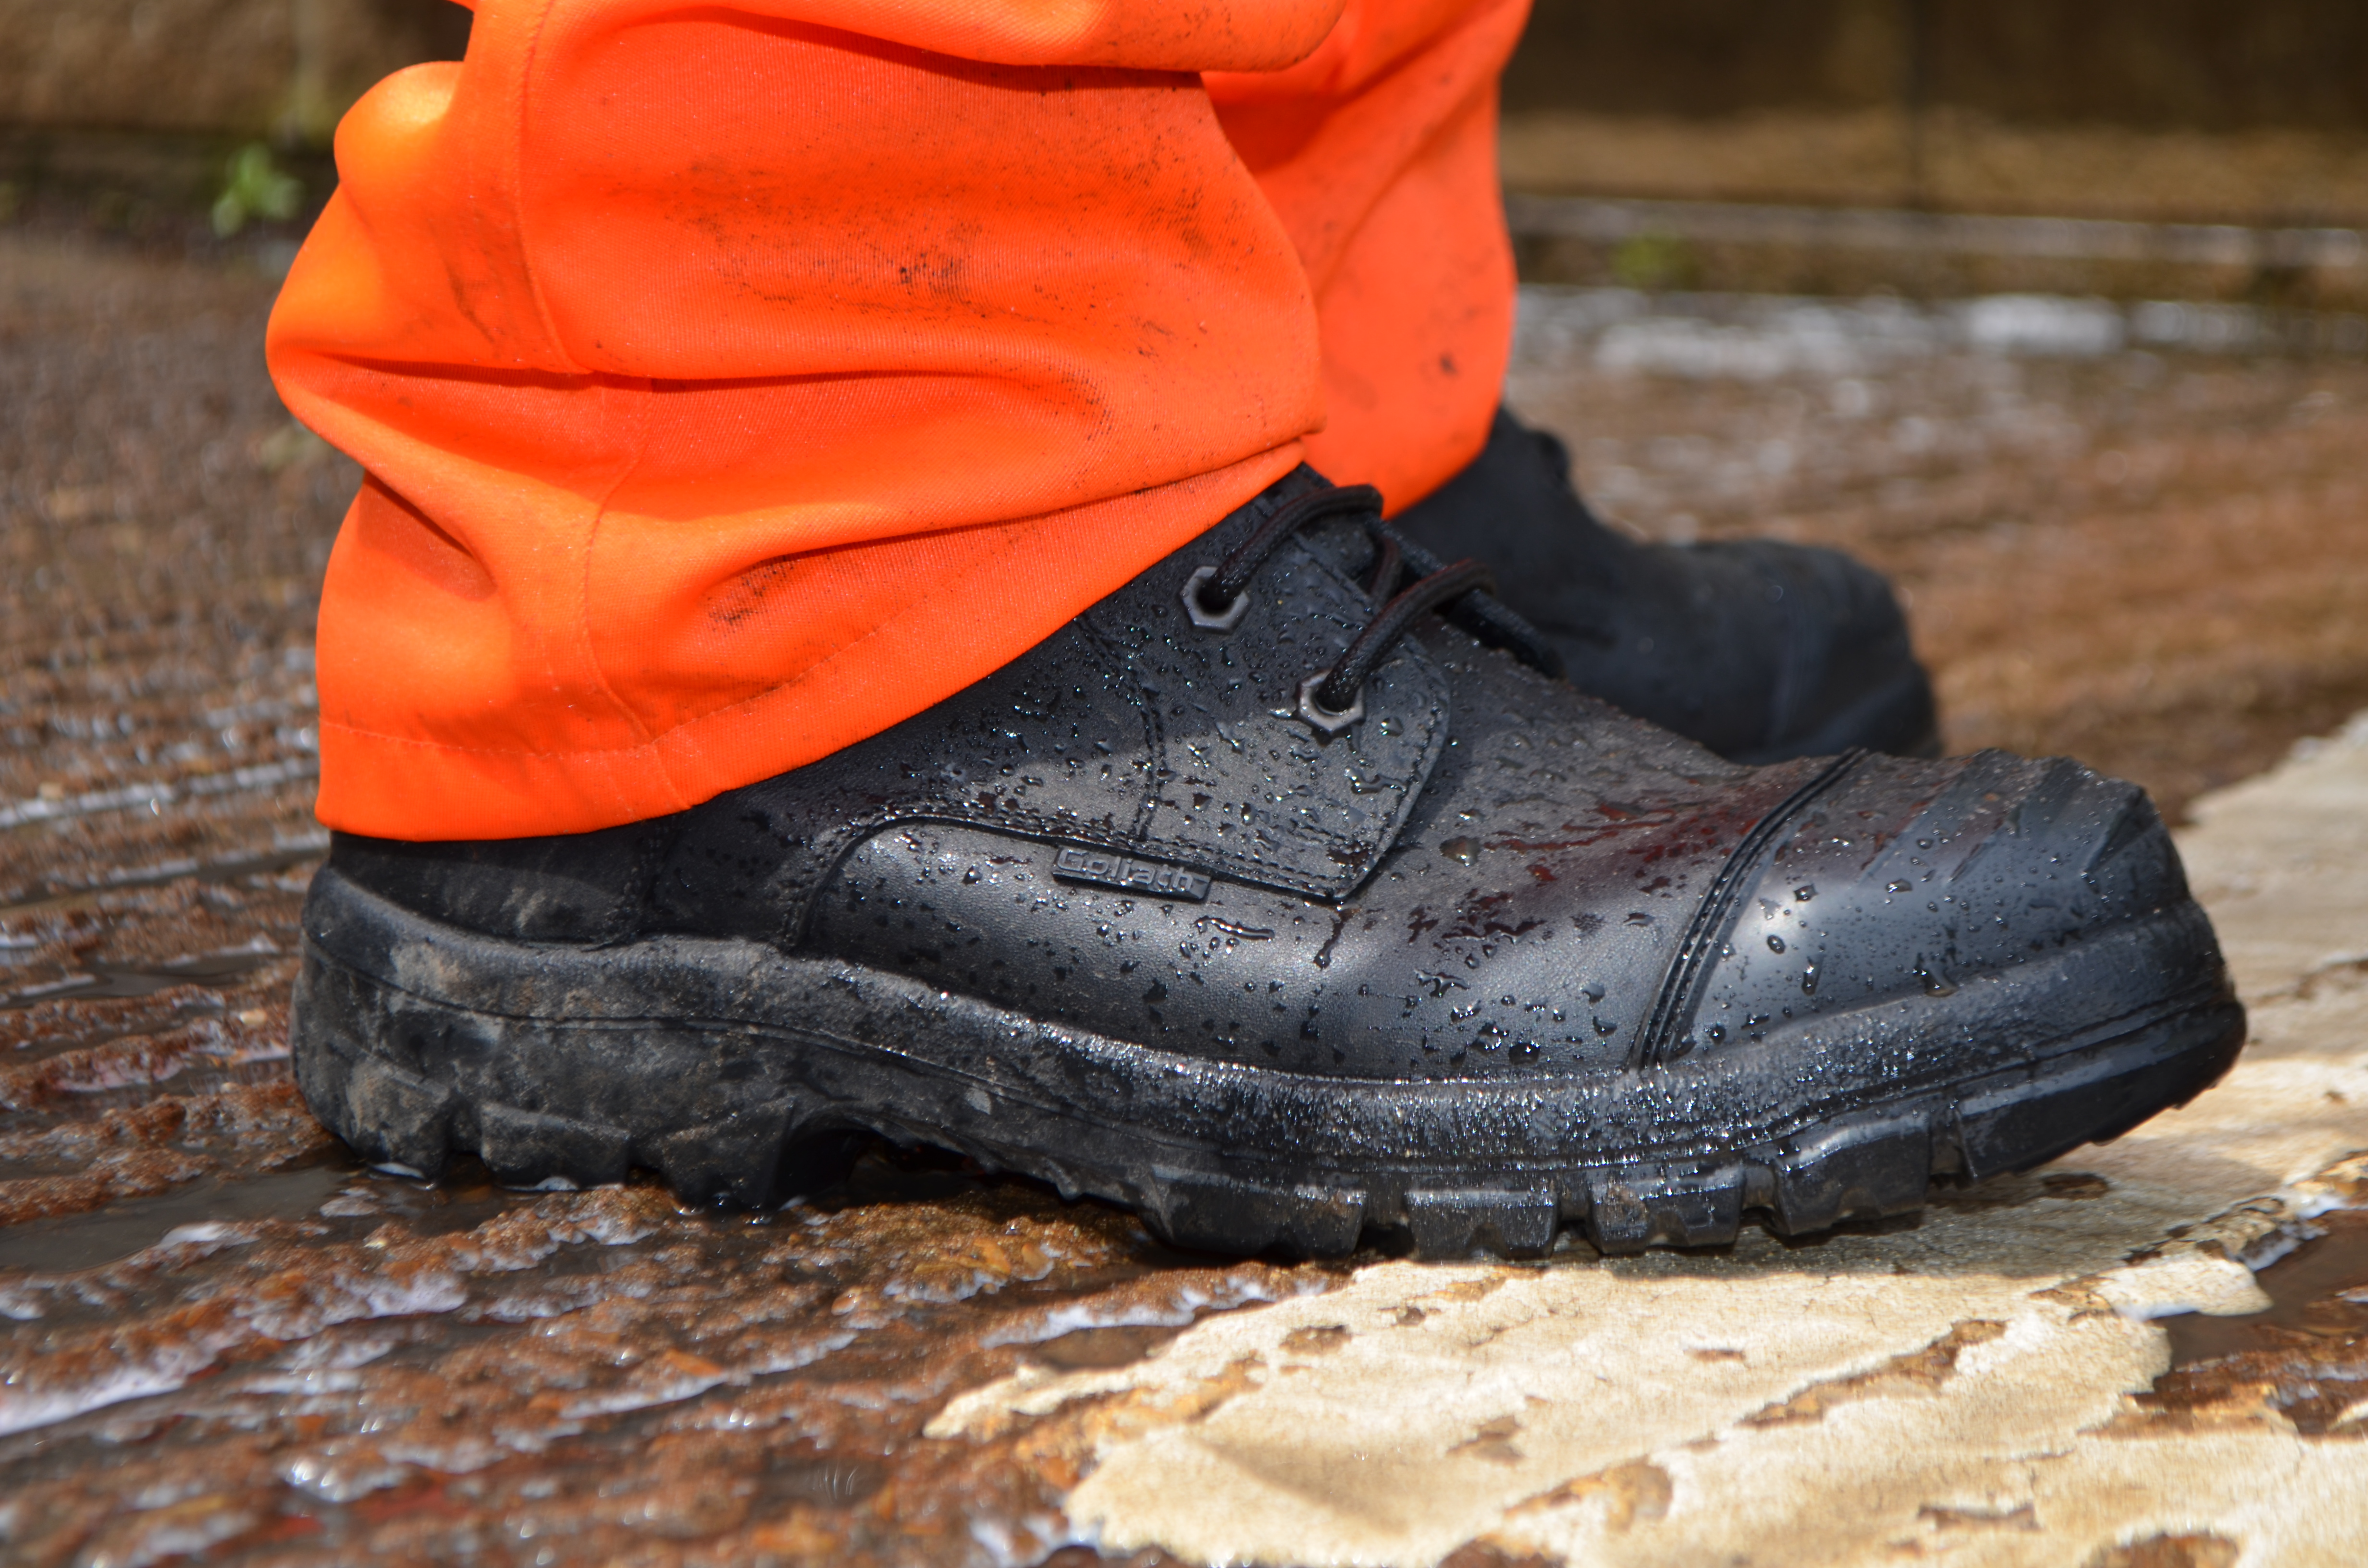 GORE-TEX®  Construction and Utility boots for all day comfort.